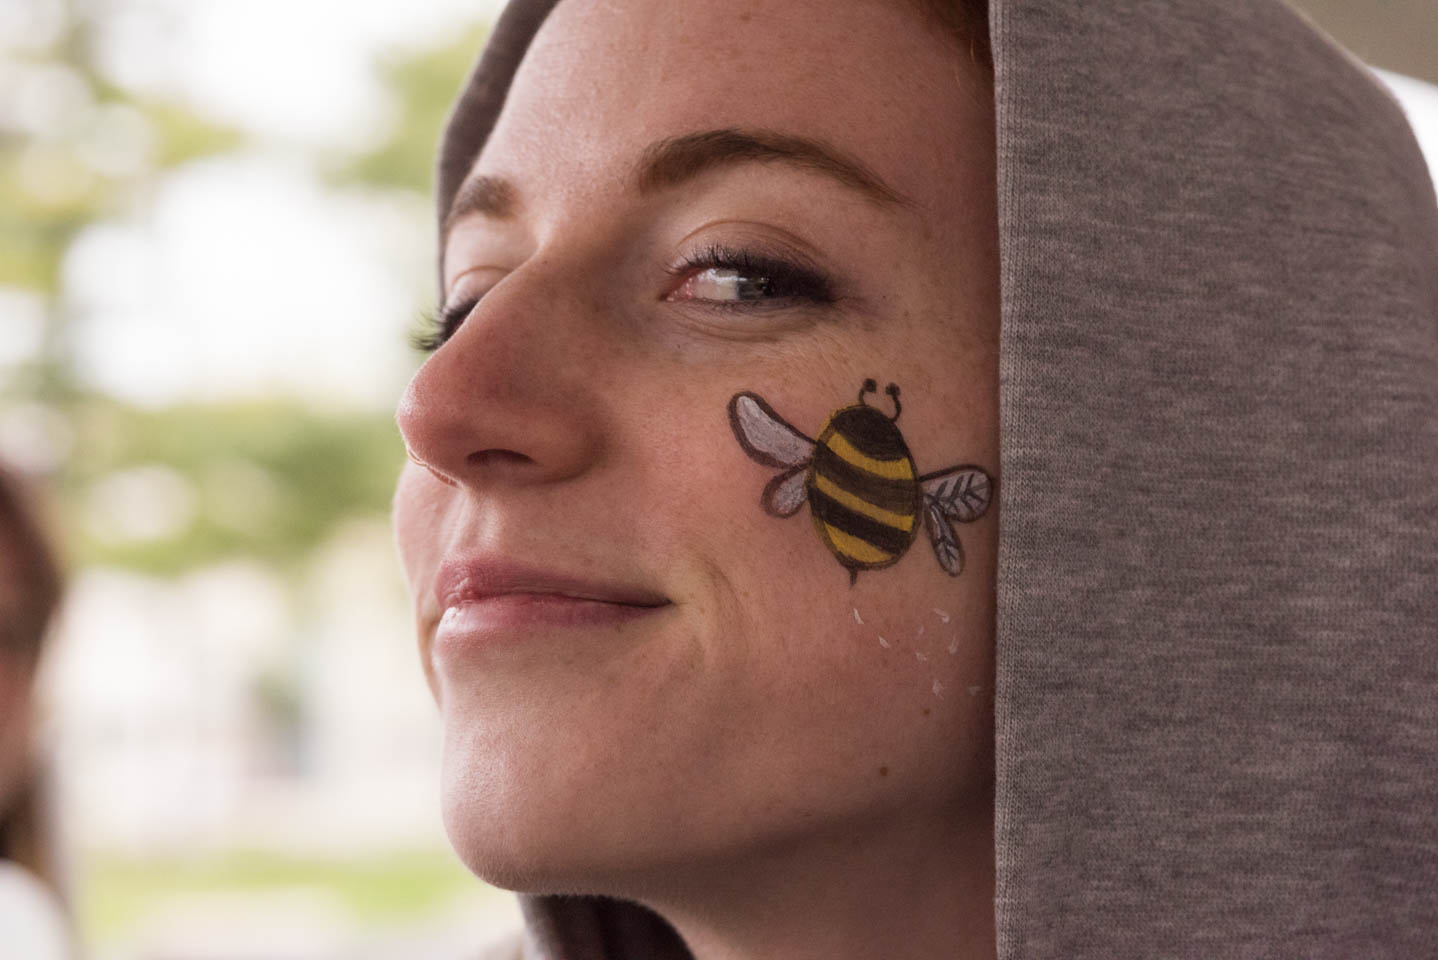 Caitlin Watters and bee face decoration